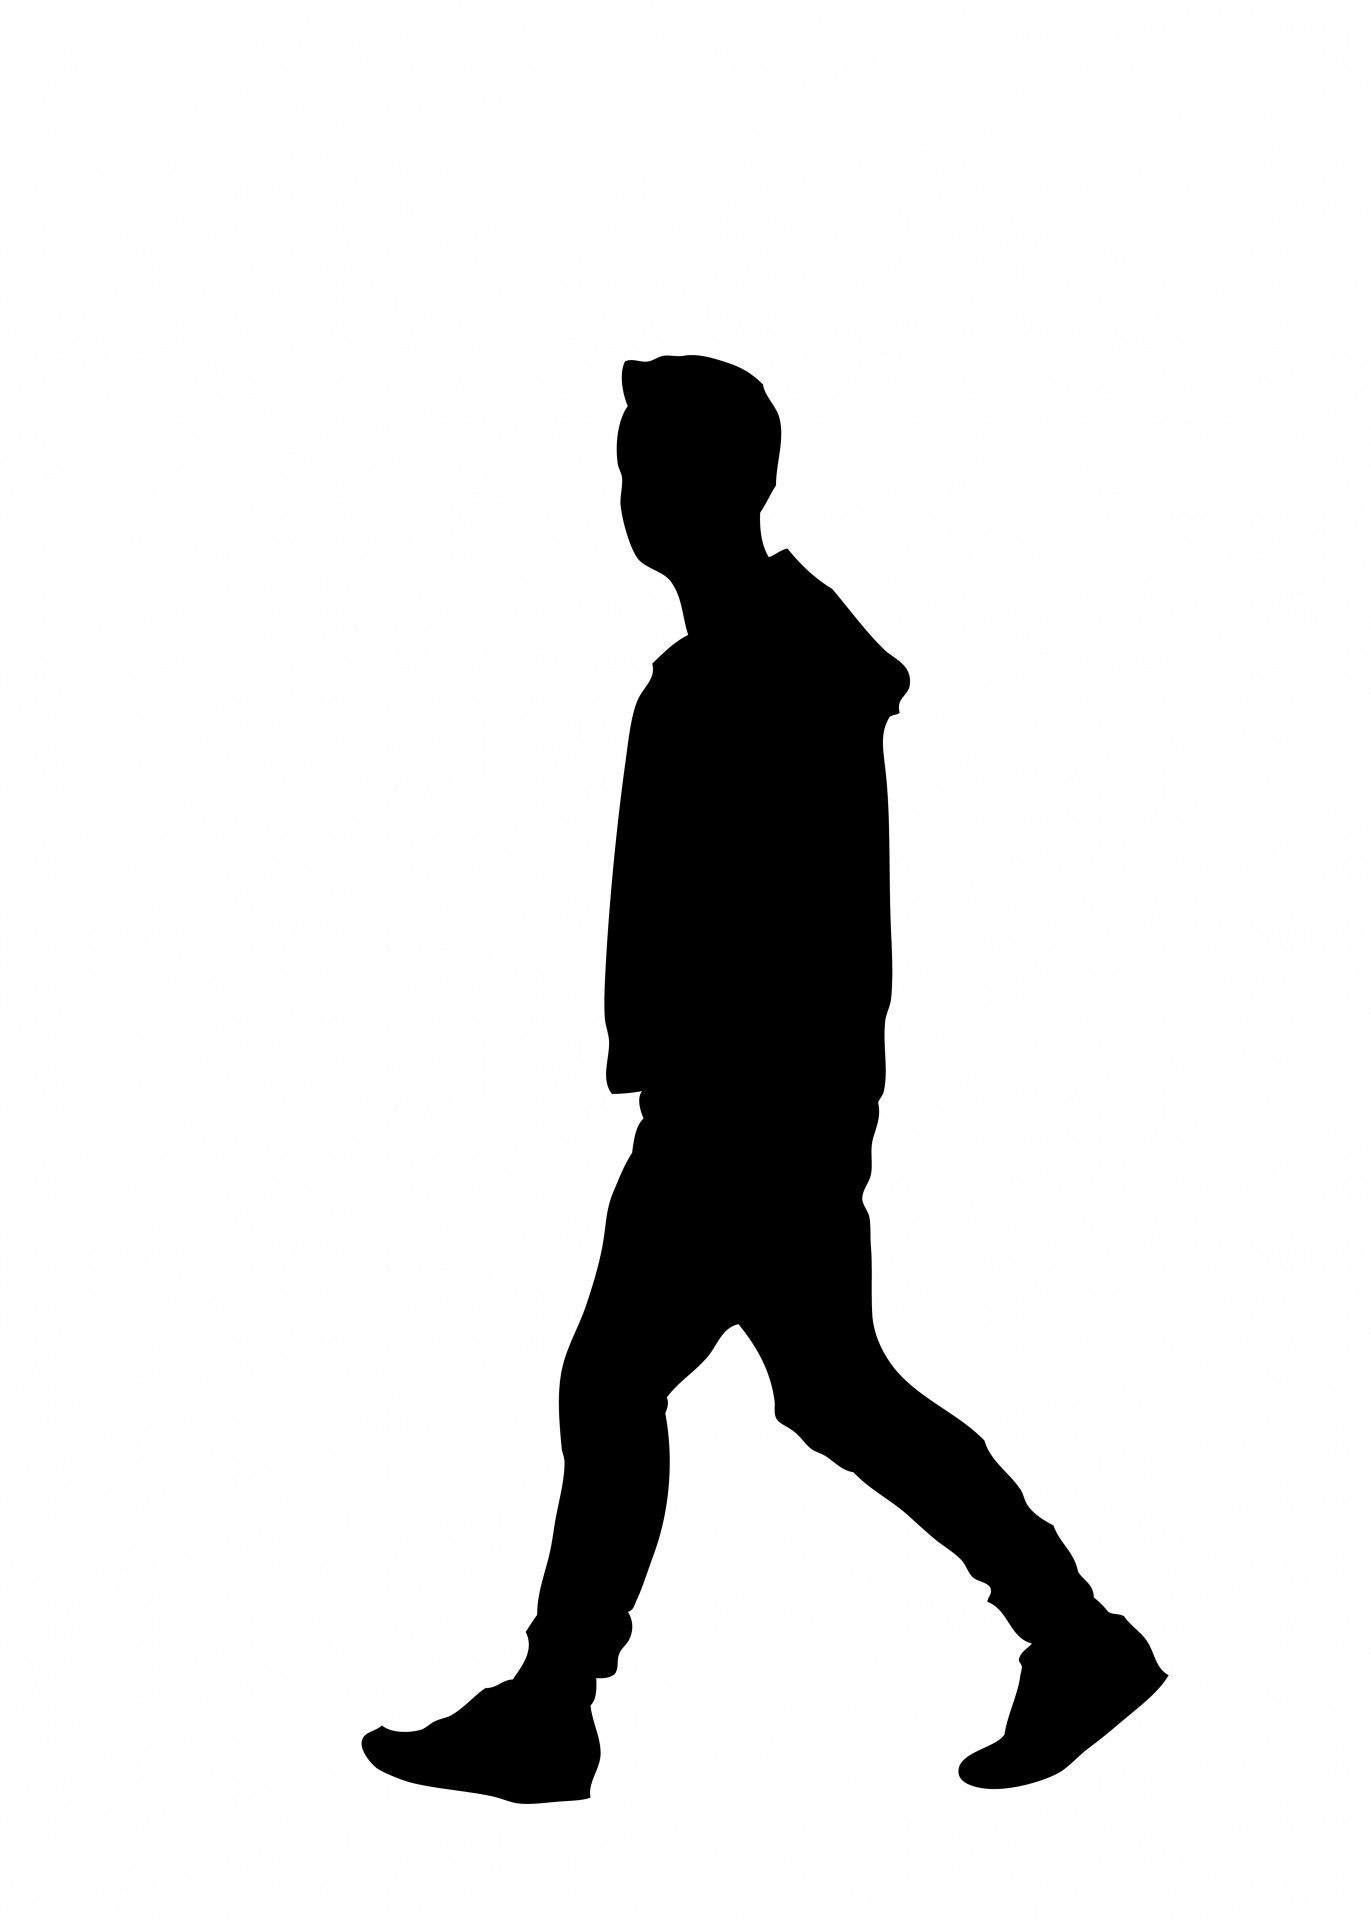 Silhouette Paintings Of People Silhouette Walking Away Google Search Scale Figures